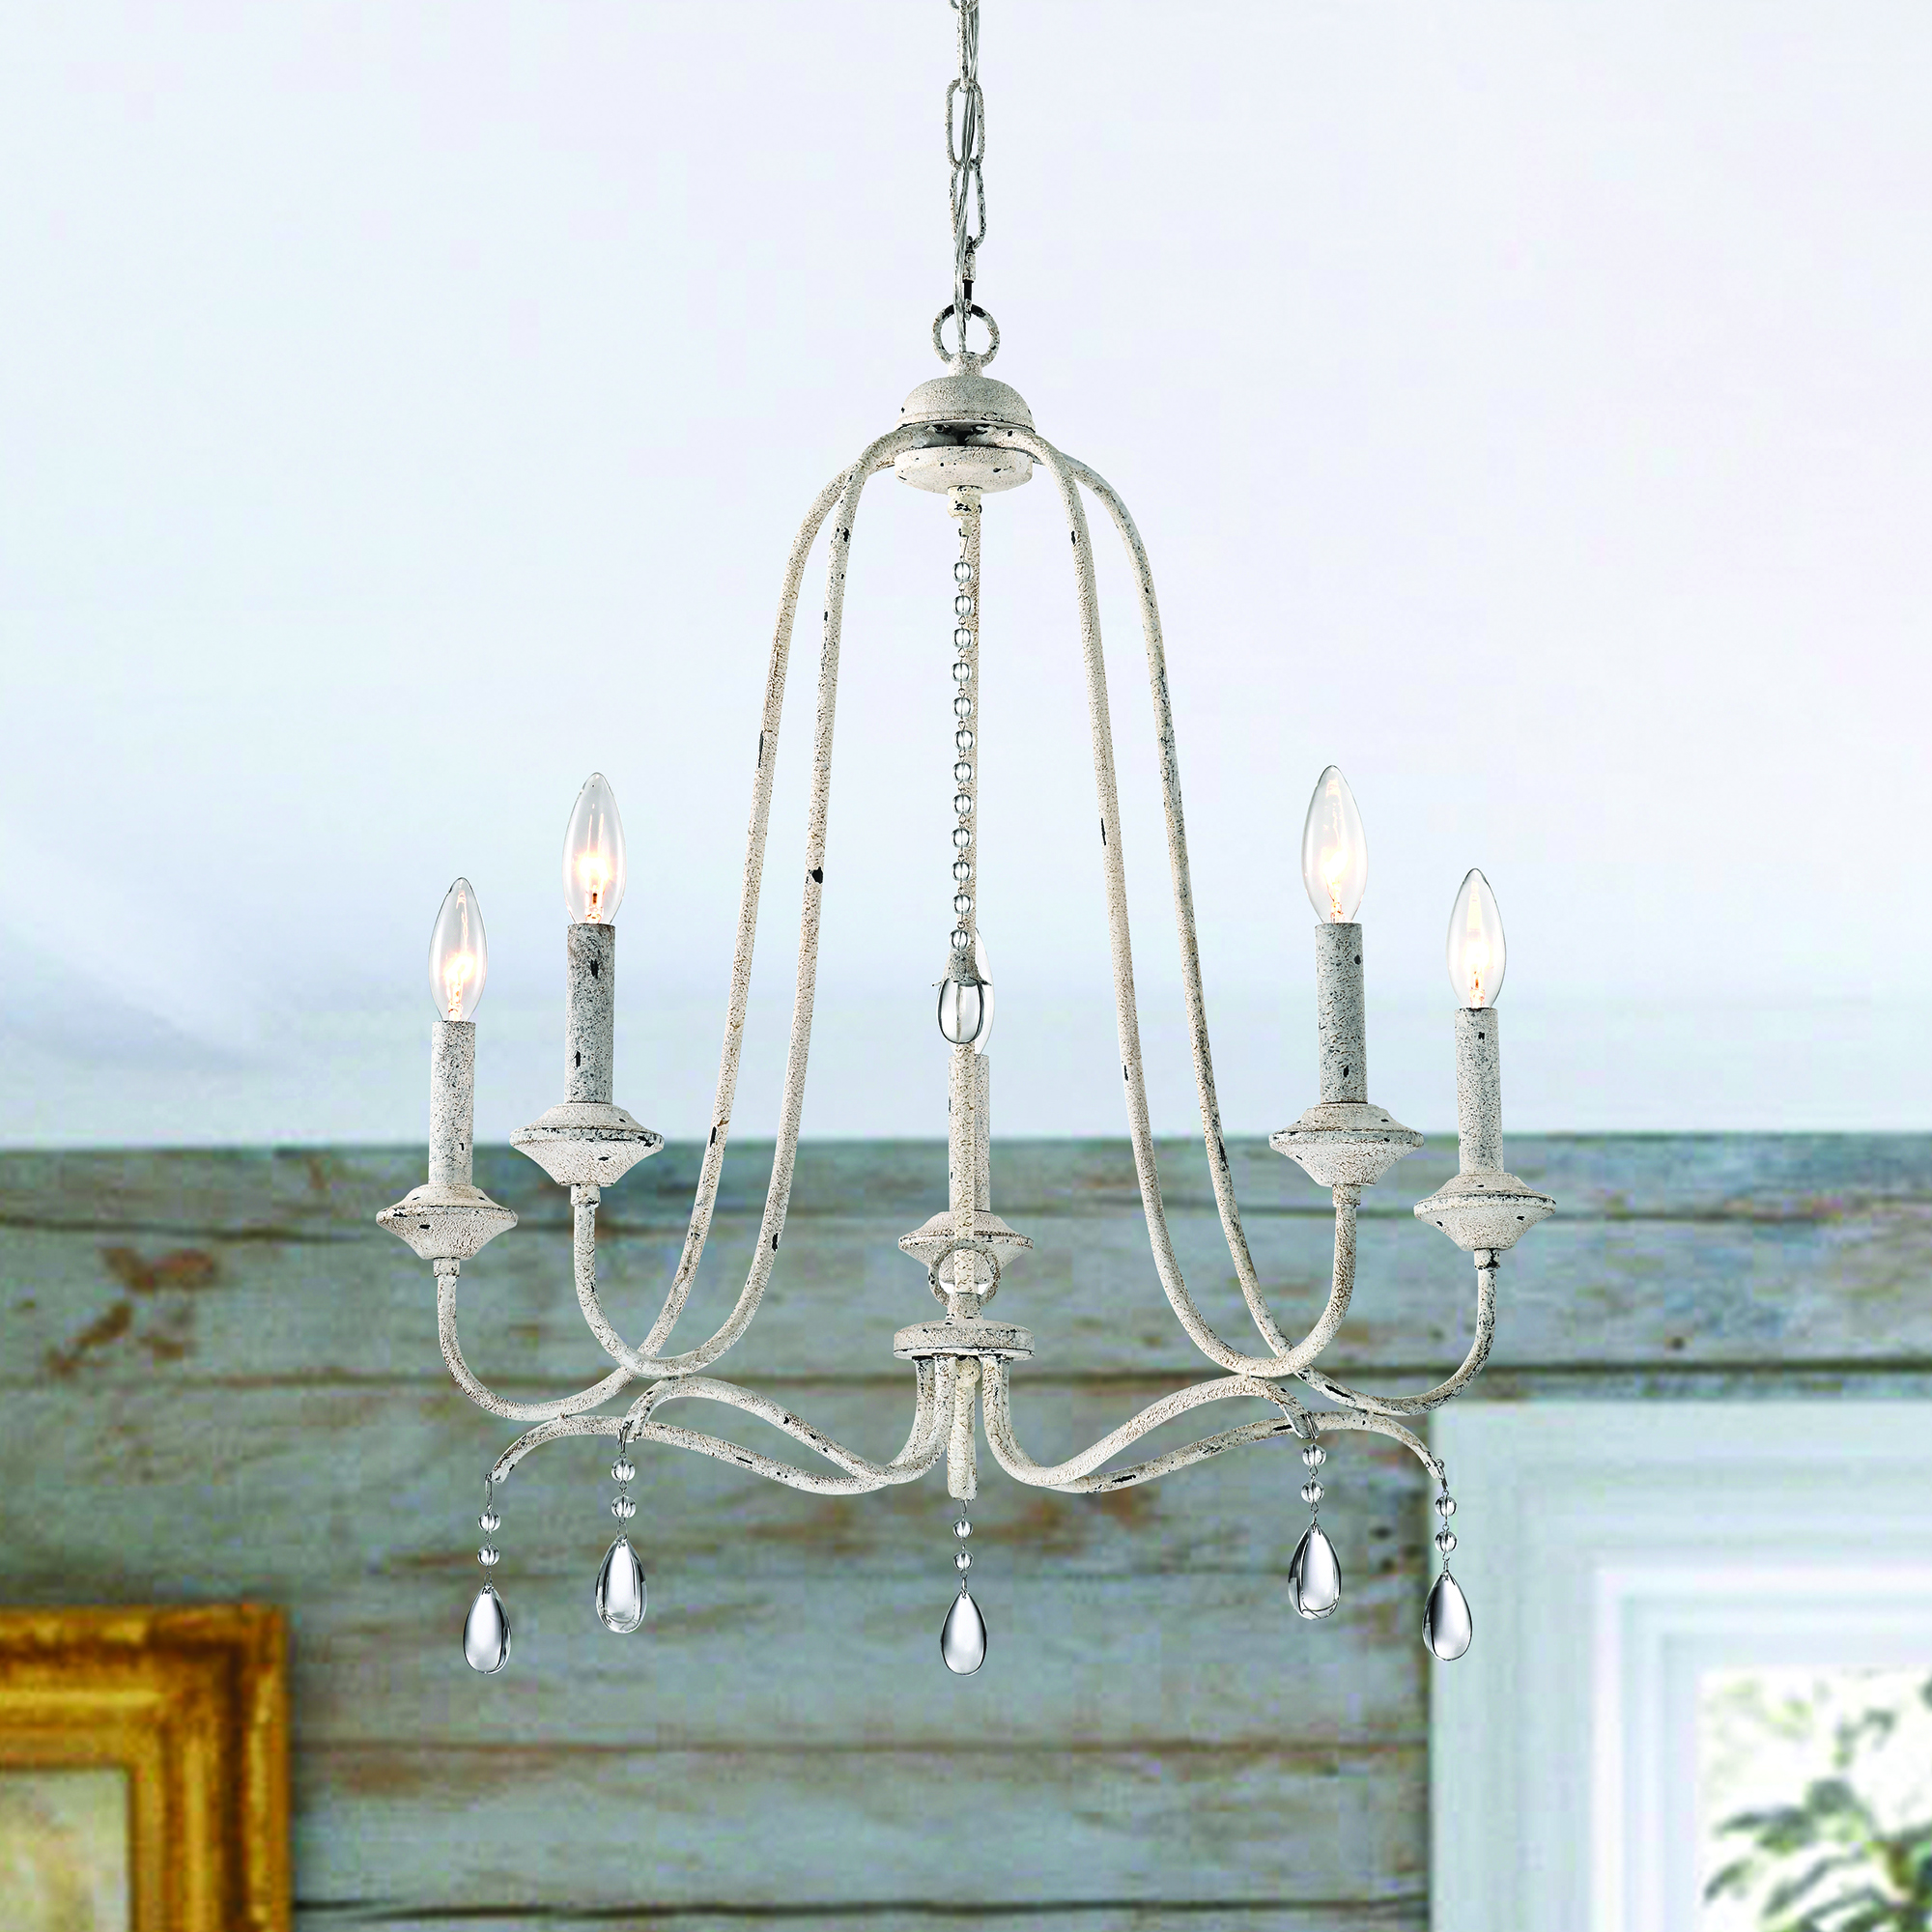 5 Light Distressed Antique White Farmhouse Chandelier With Crystals Edvivi Lighting